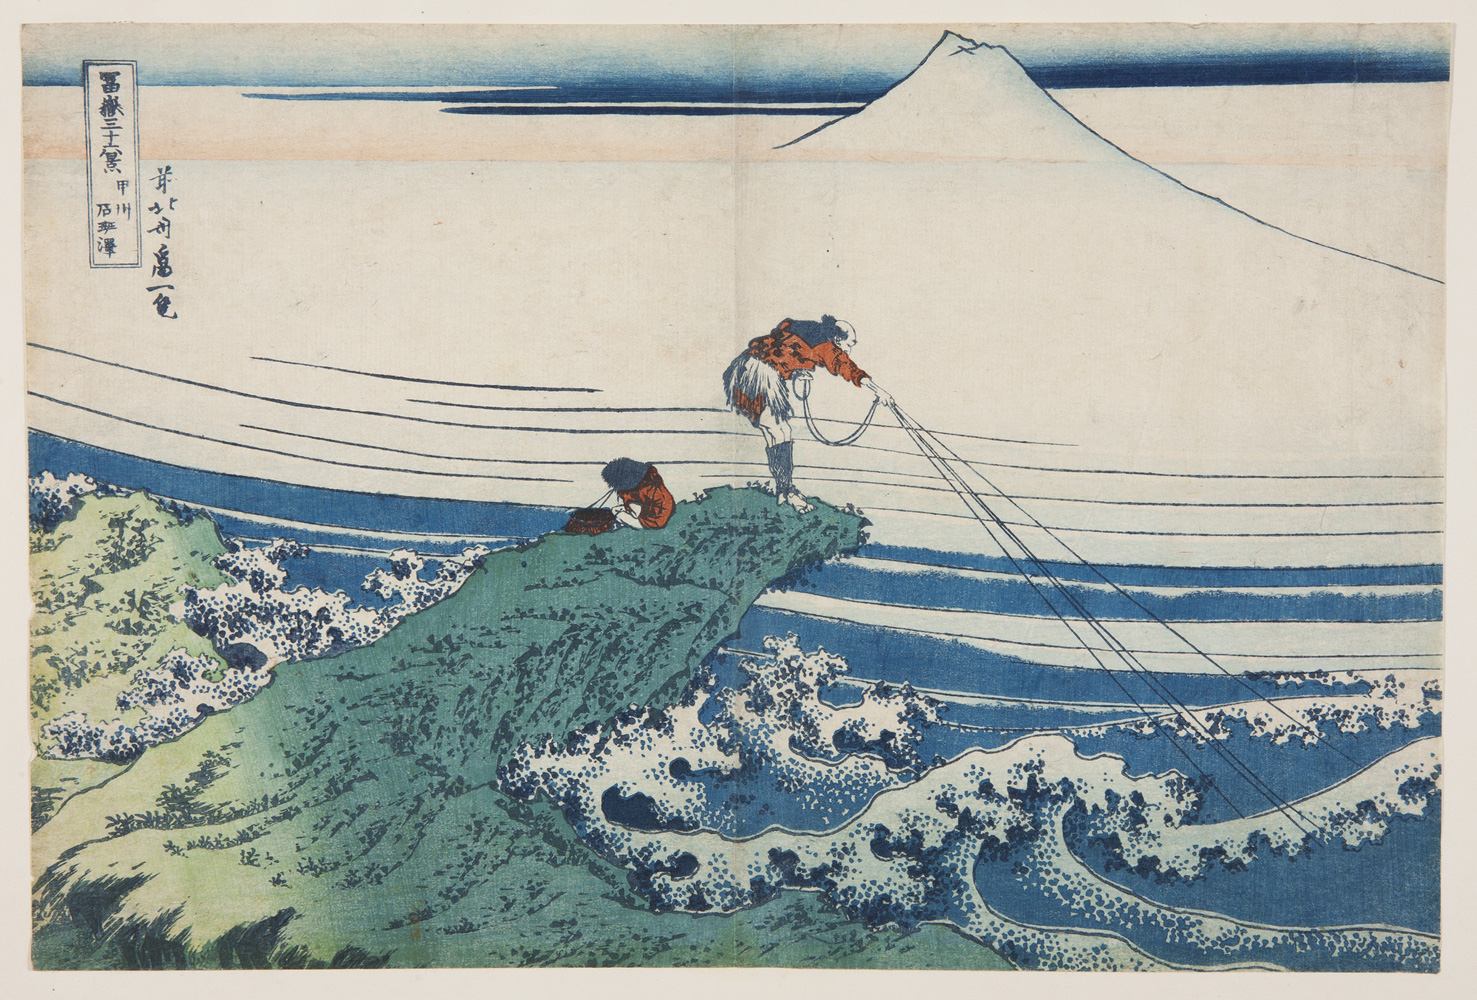 japanese print of two japanese men fishing in waves. there is a mountain in the background.